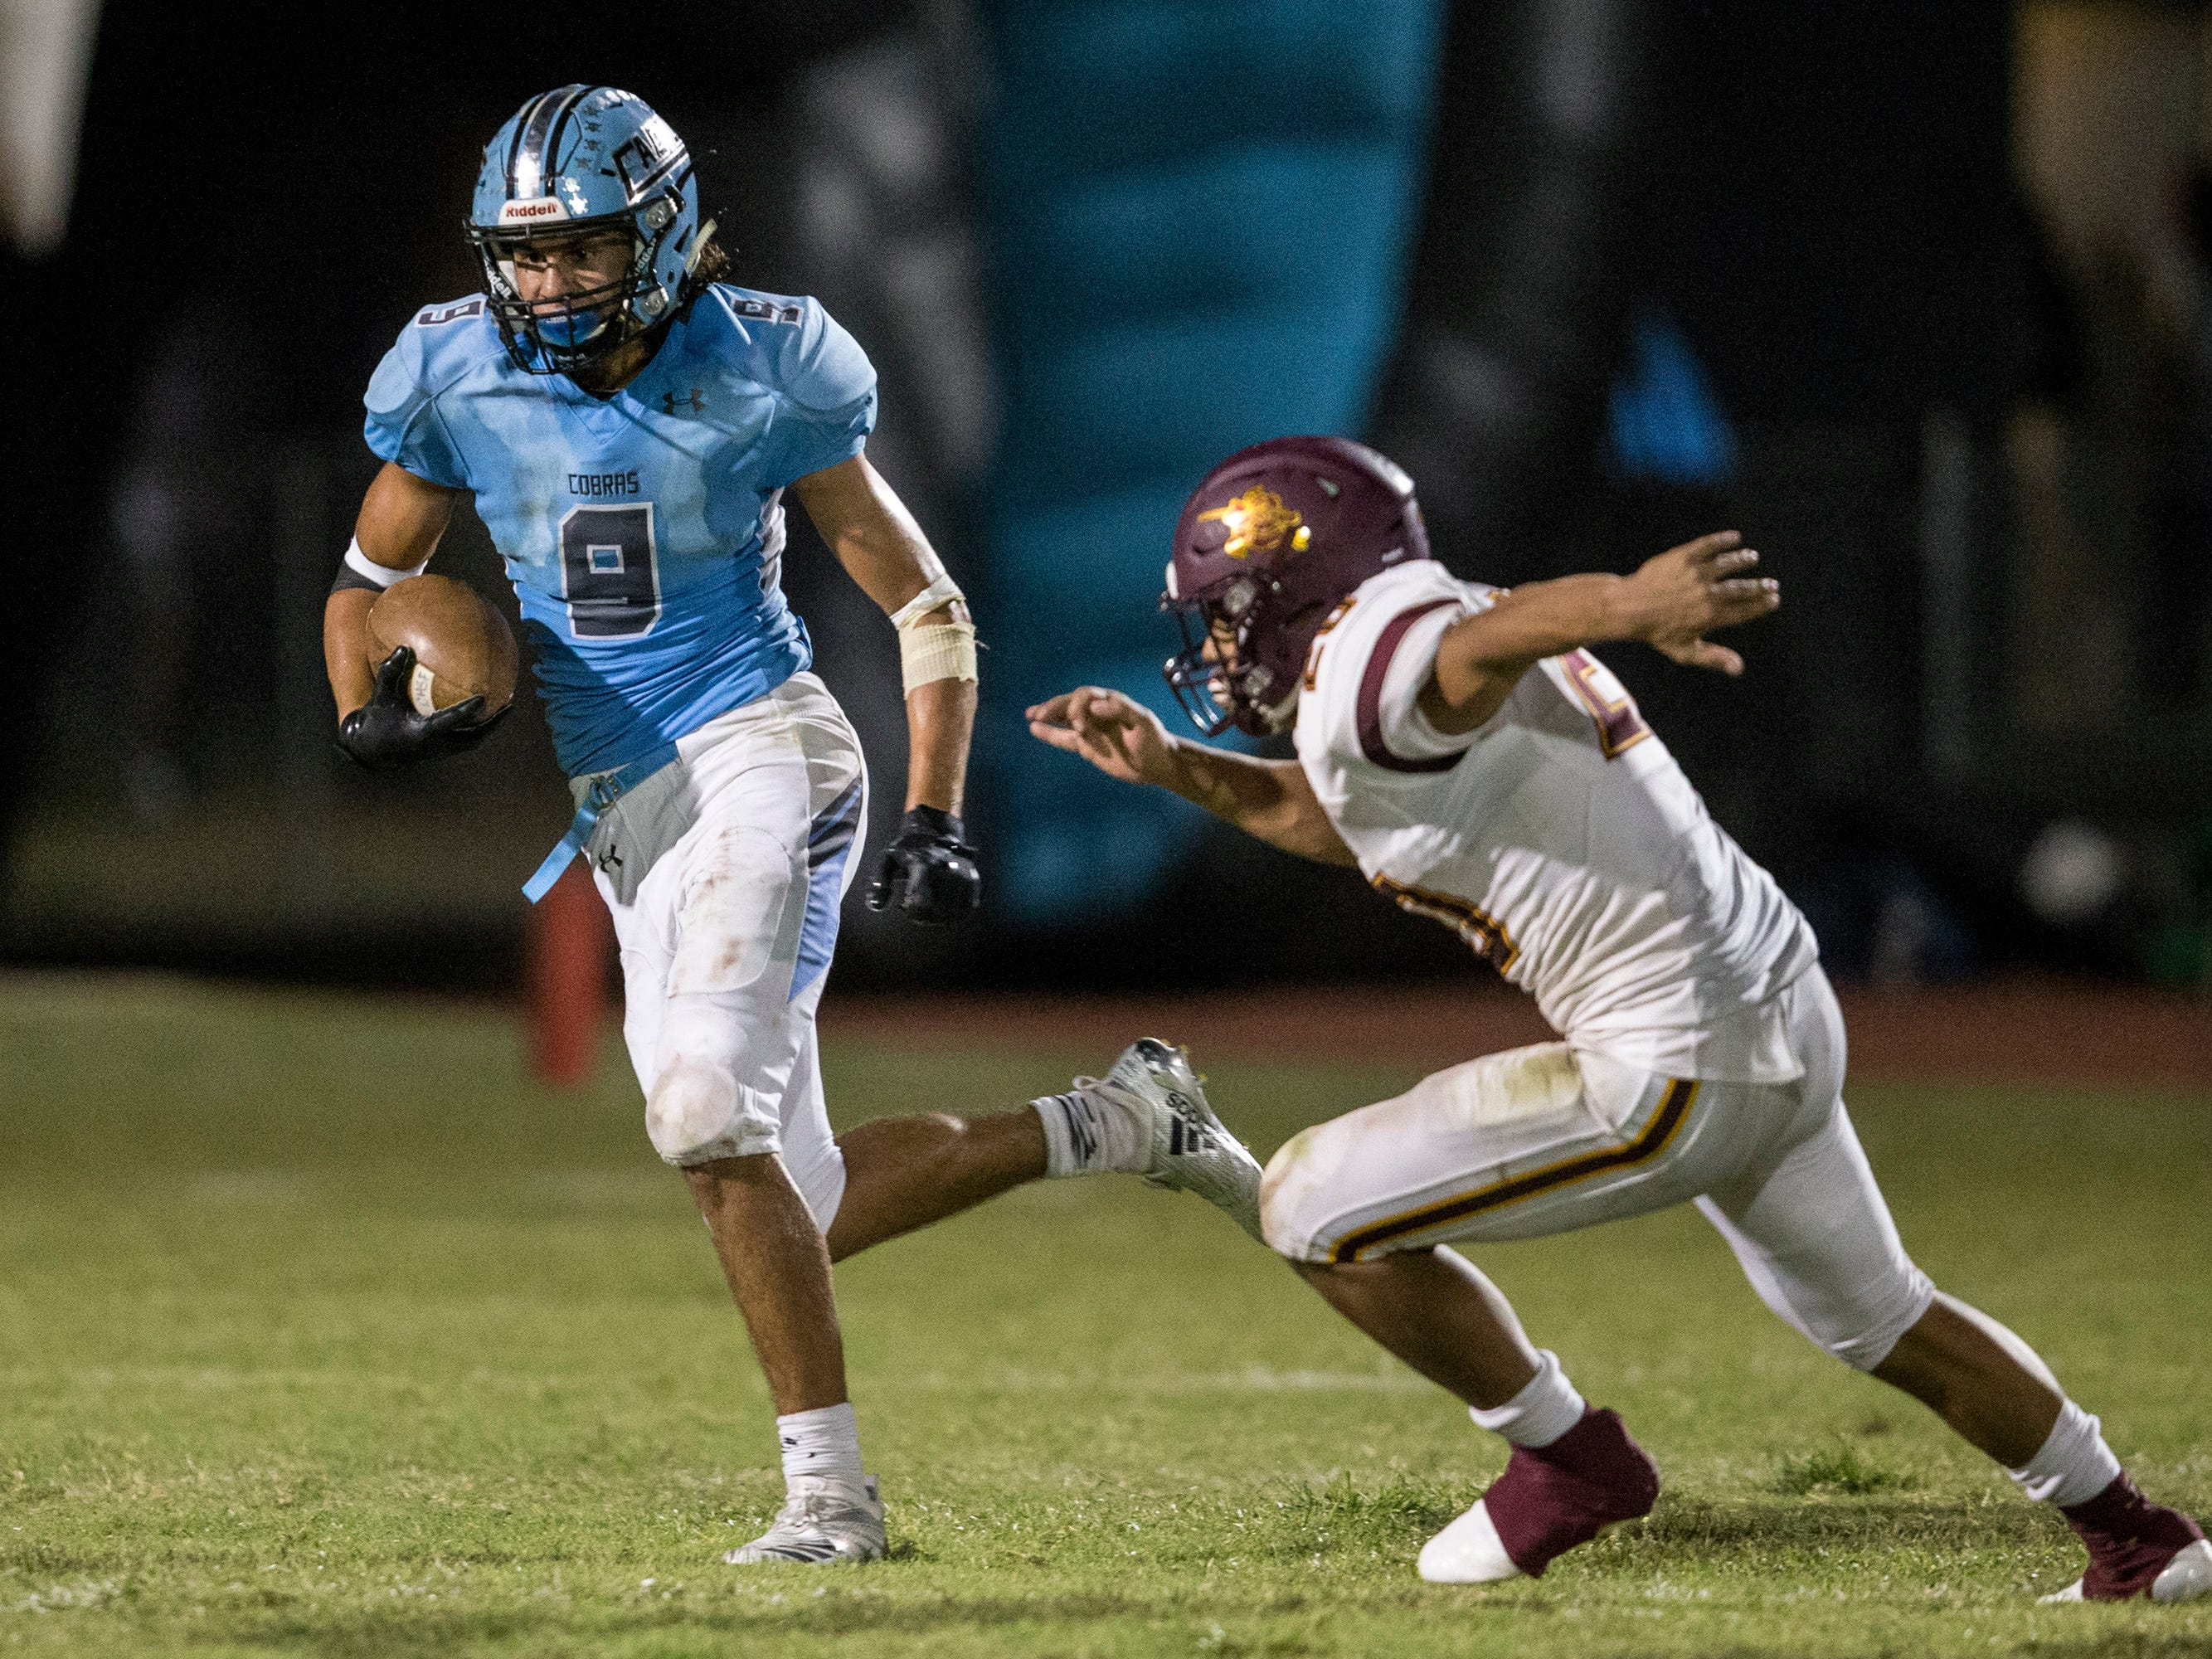 Cactus' Zach Cullop rushes against Salpointe in the 3rd quarter on Friday, Sept. 14, 2018, at Cactus High School in Glendale, Ariz.#azhsfb